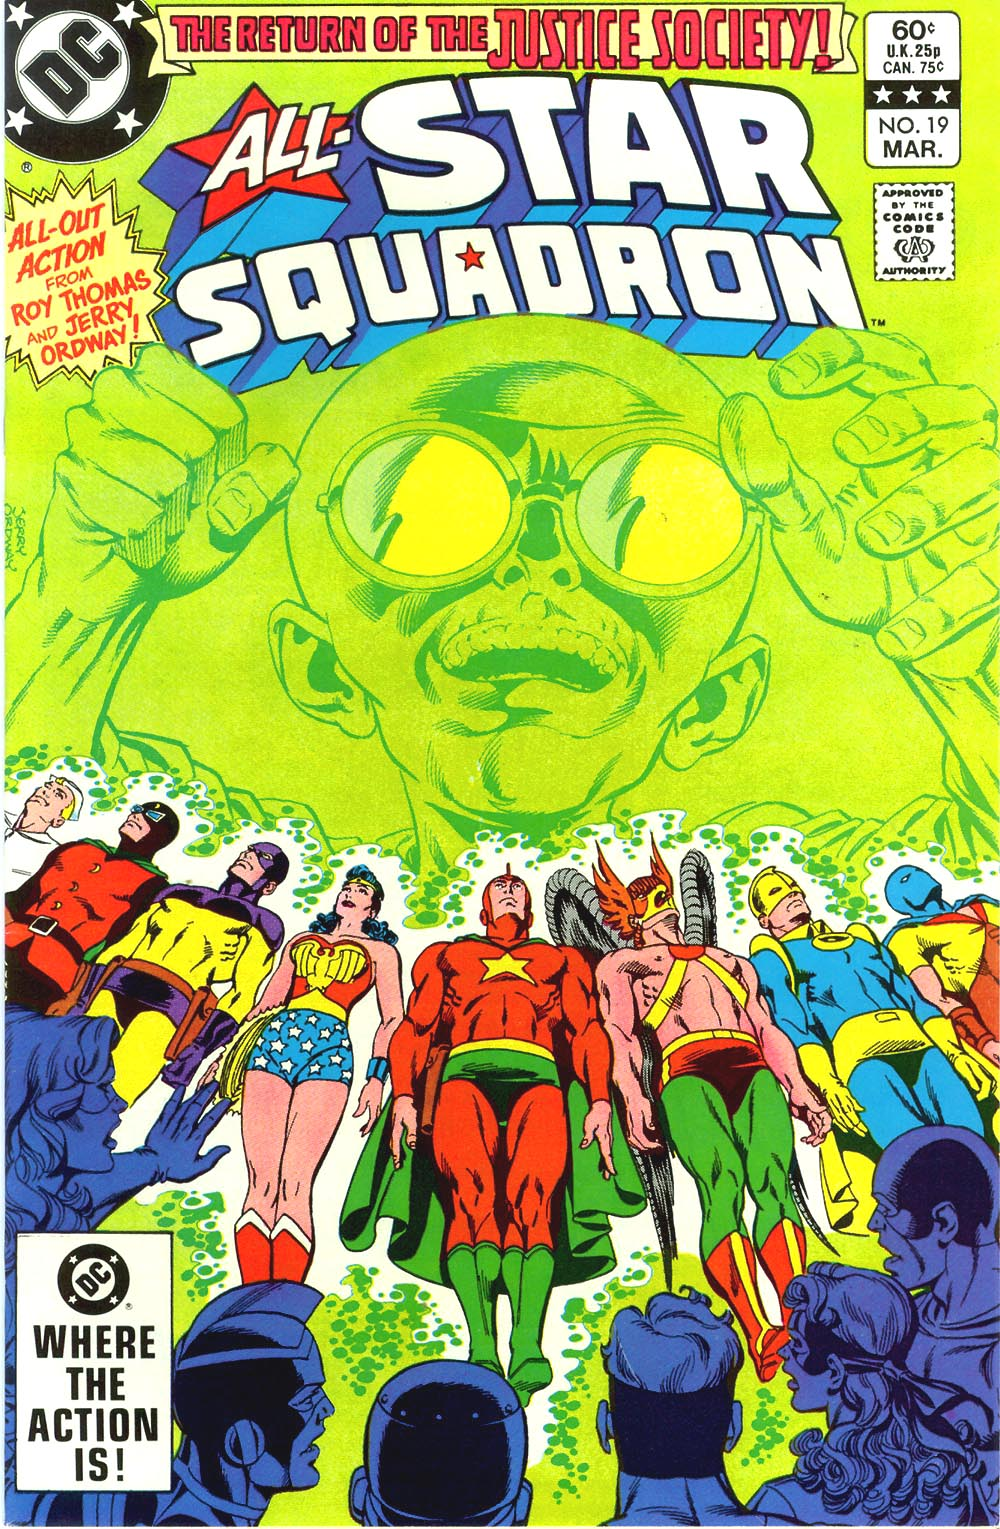 Read online All-Star Squadron comic -  Issue #19 - 1